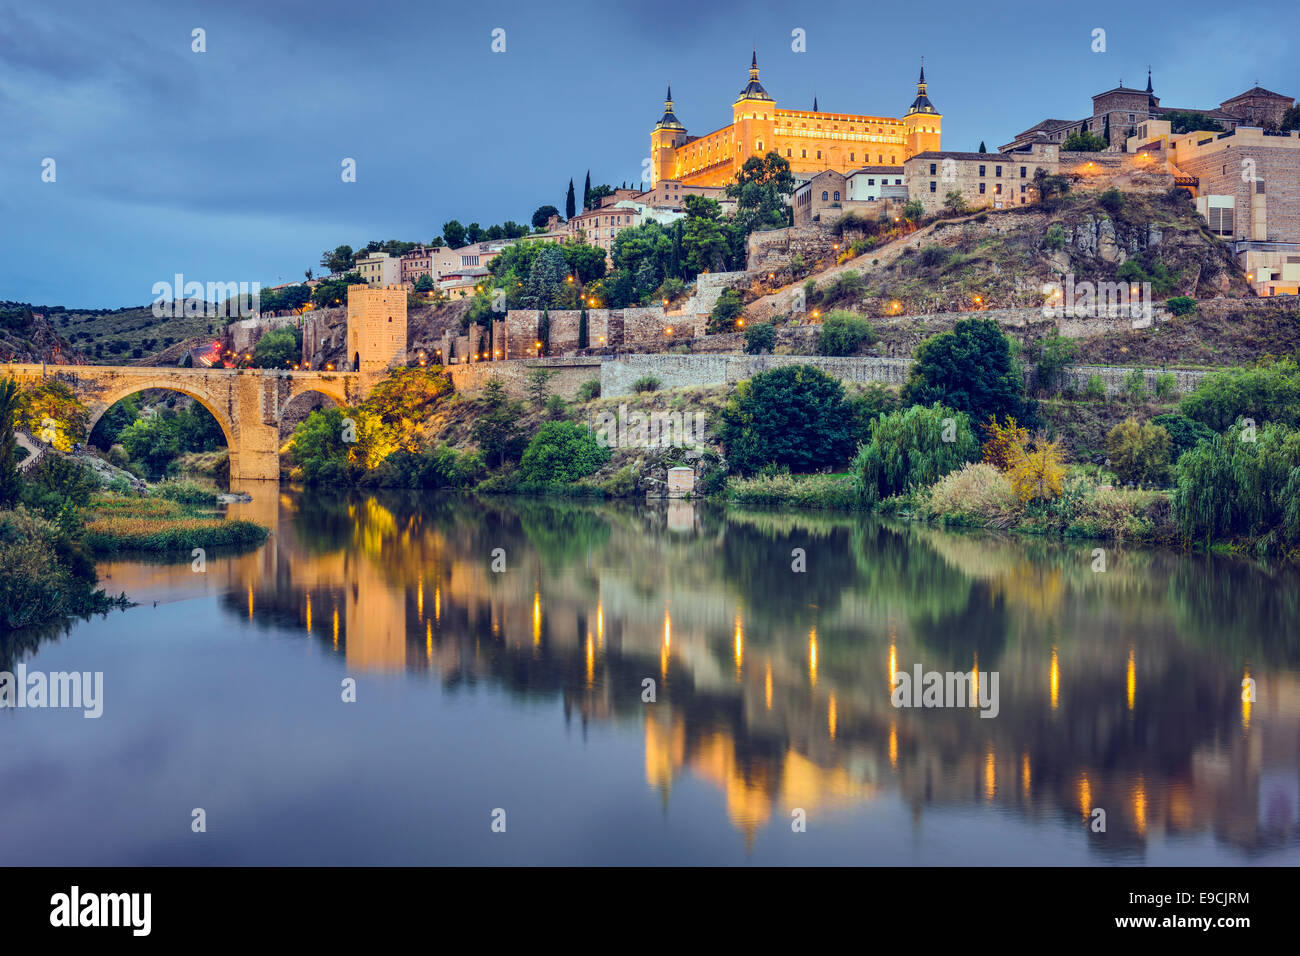 Toledo, Spain town skyline on the Tagus River. Stock Photo